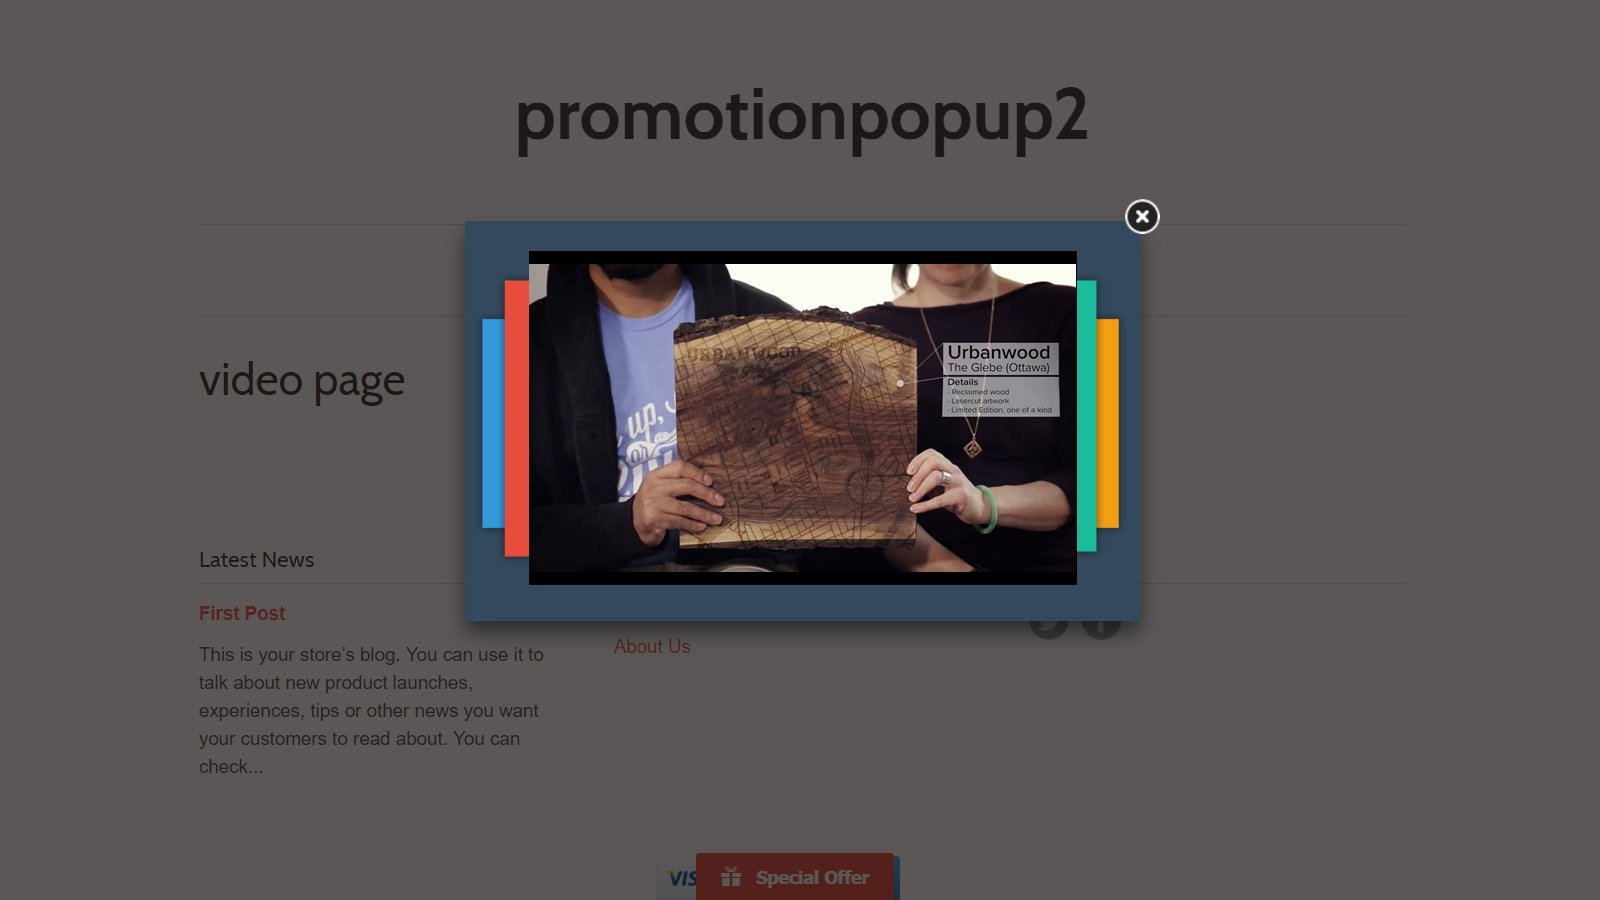 shopify promotion popup app by Secomapp - video popup